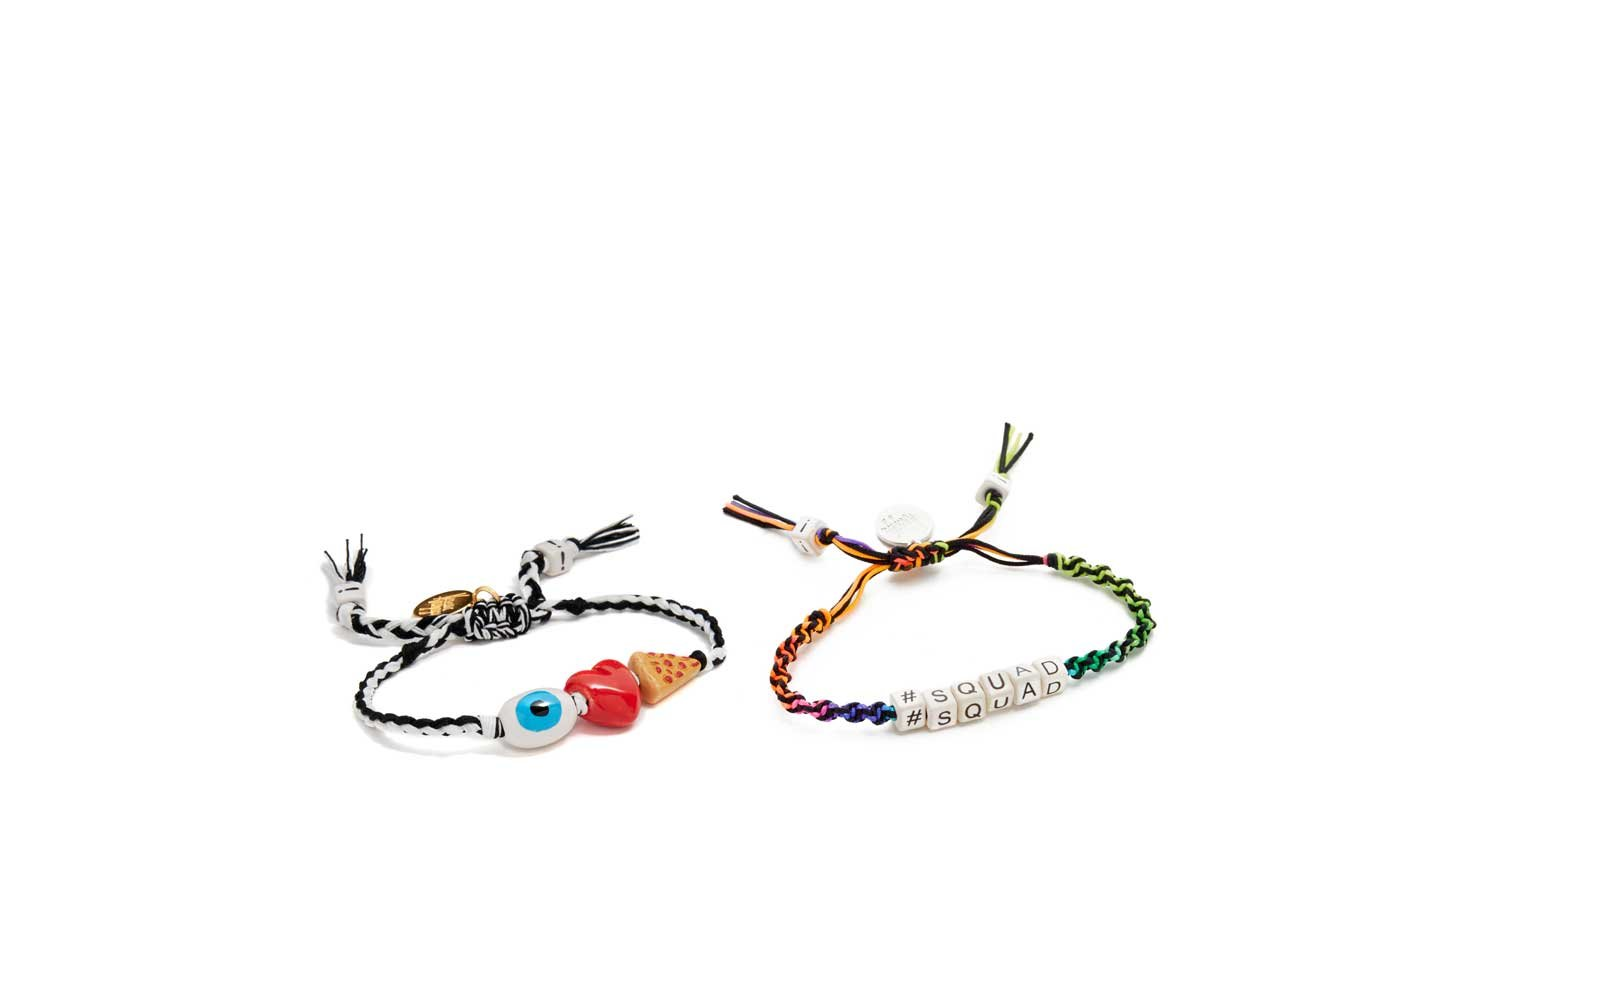 Venessa Arizaga Friendship Bracelets